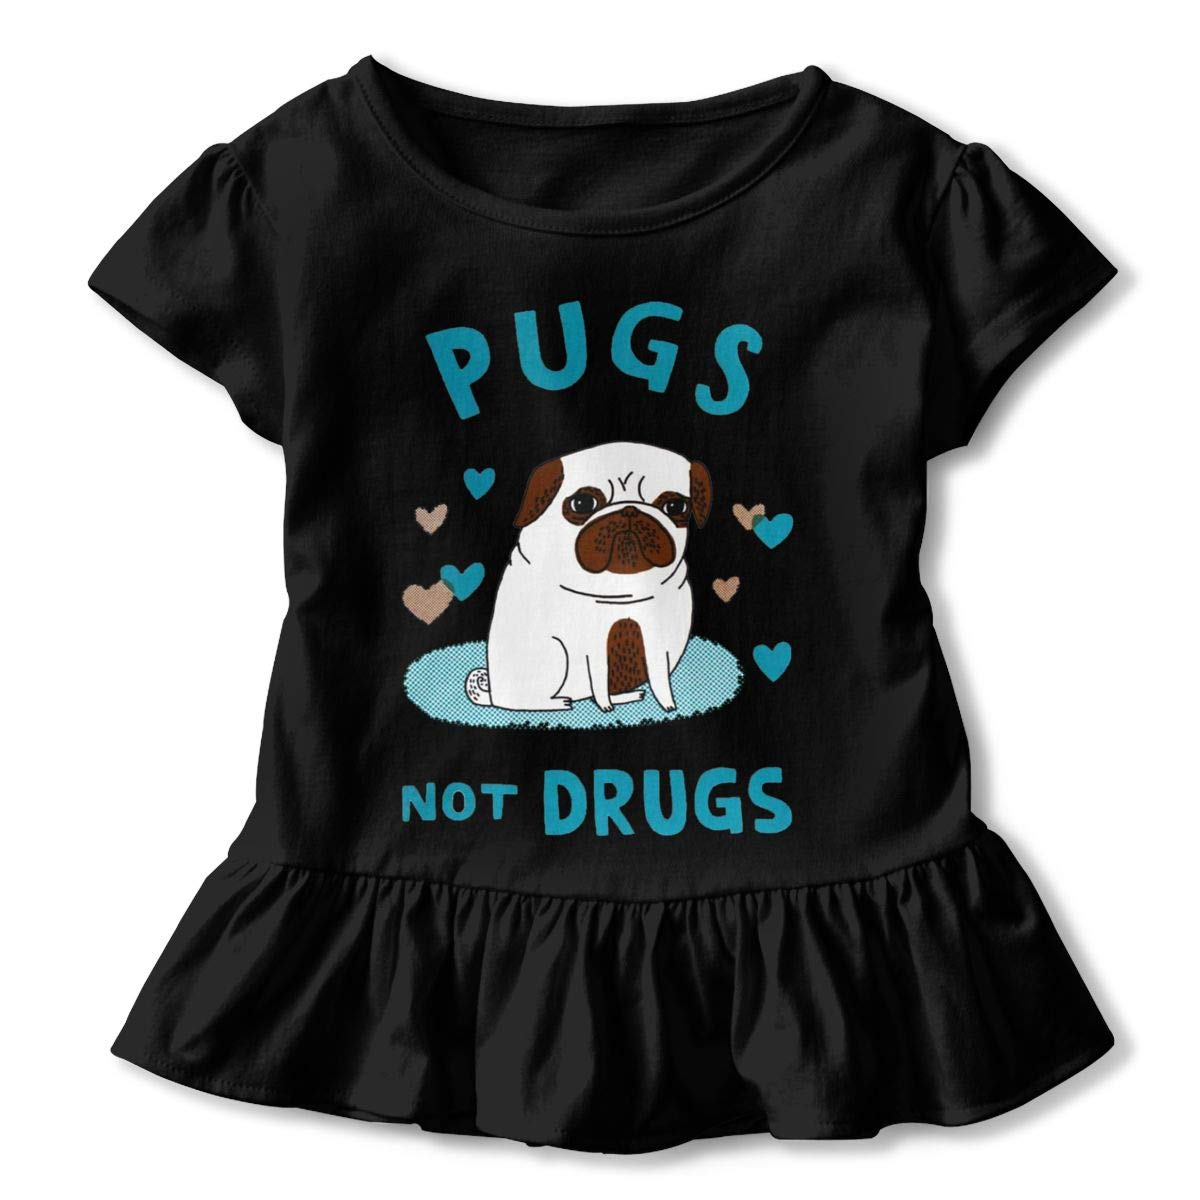 Pugs Not Drugs T-Shirt Little Baby Girls Flounced T Shirts Fashion Graphic T-Shirt for 2-6T Baby Girls